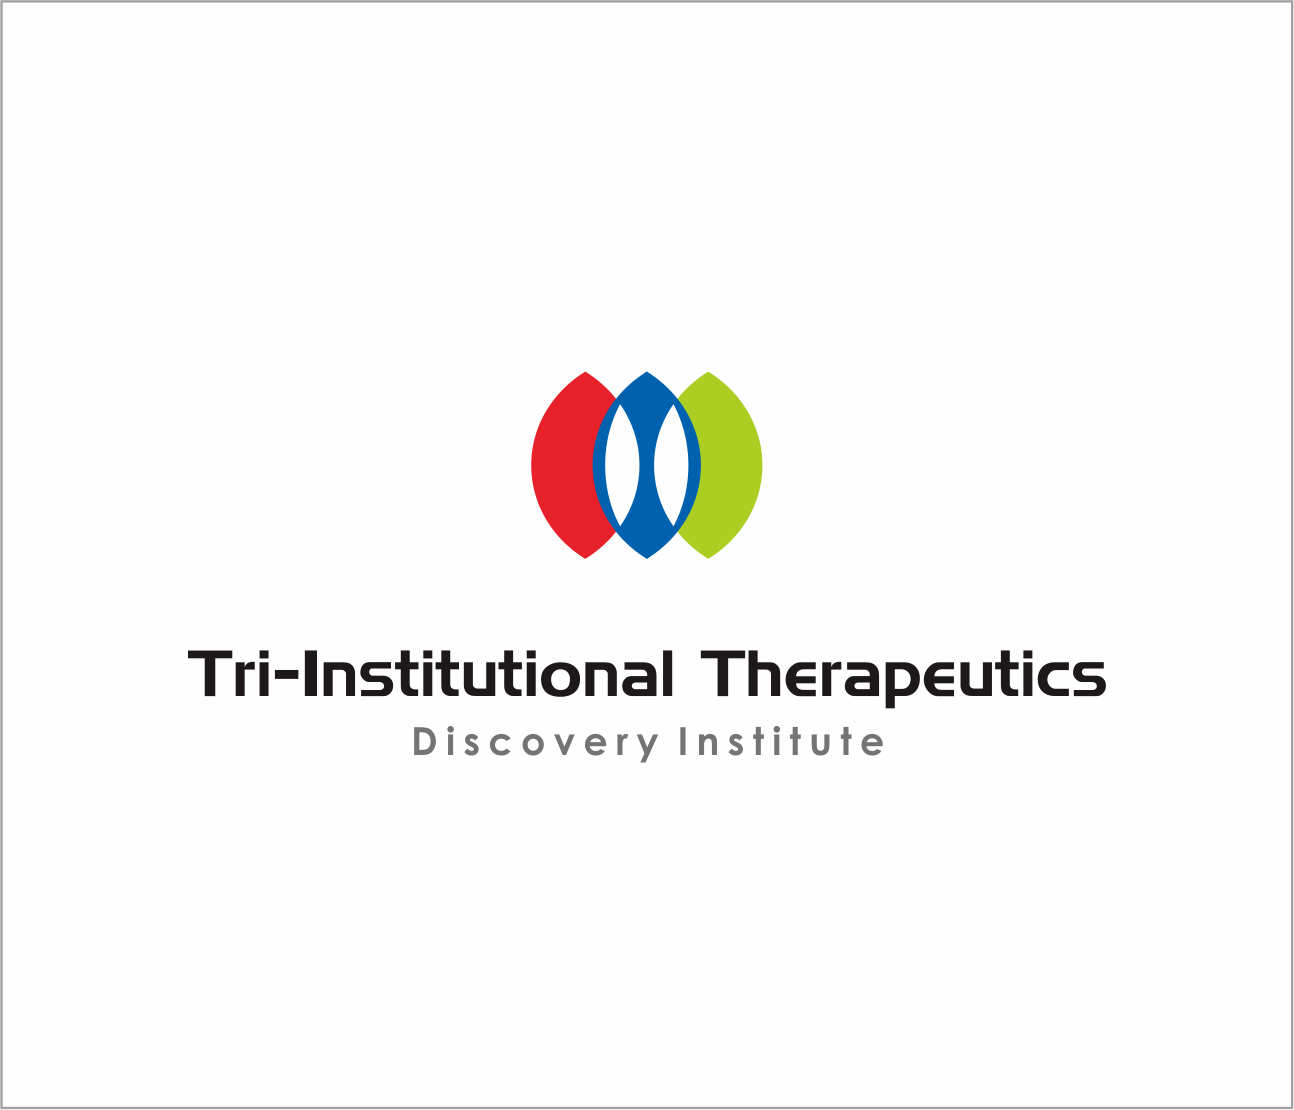 Logo Design by Armada Jamaluddin - Entry No. 58 in the Logo Design Contest Inspiring Logo Design for Tri-Institutional Therapeutics Discovery Institute.